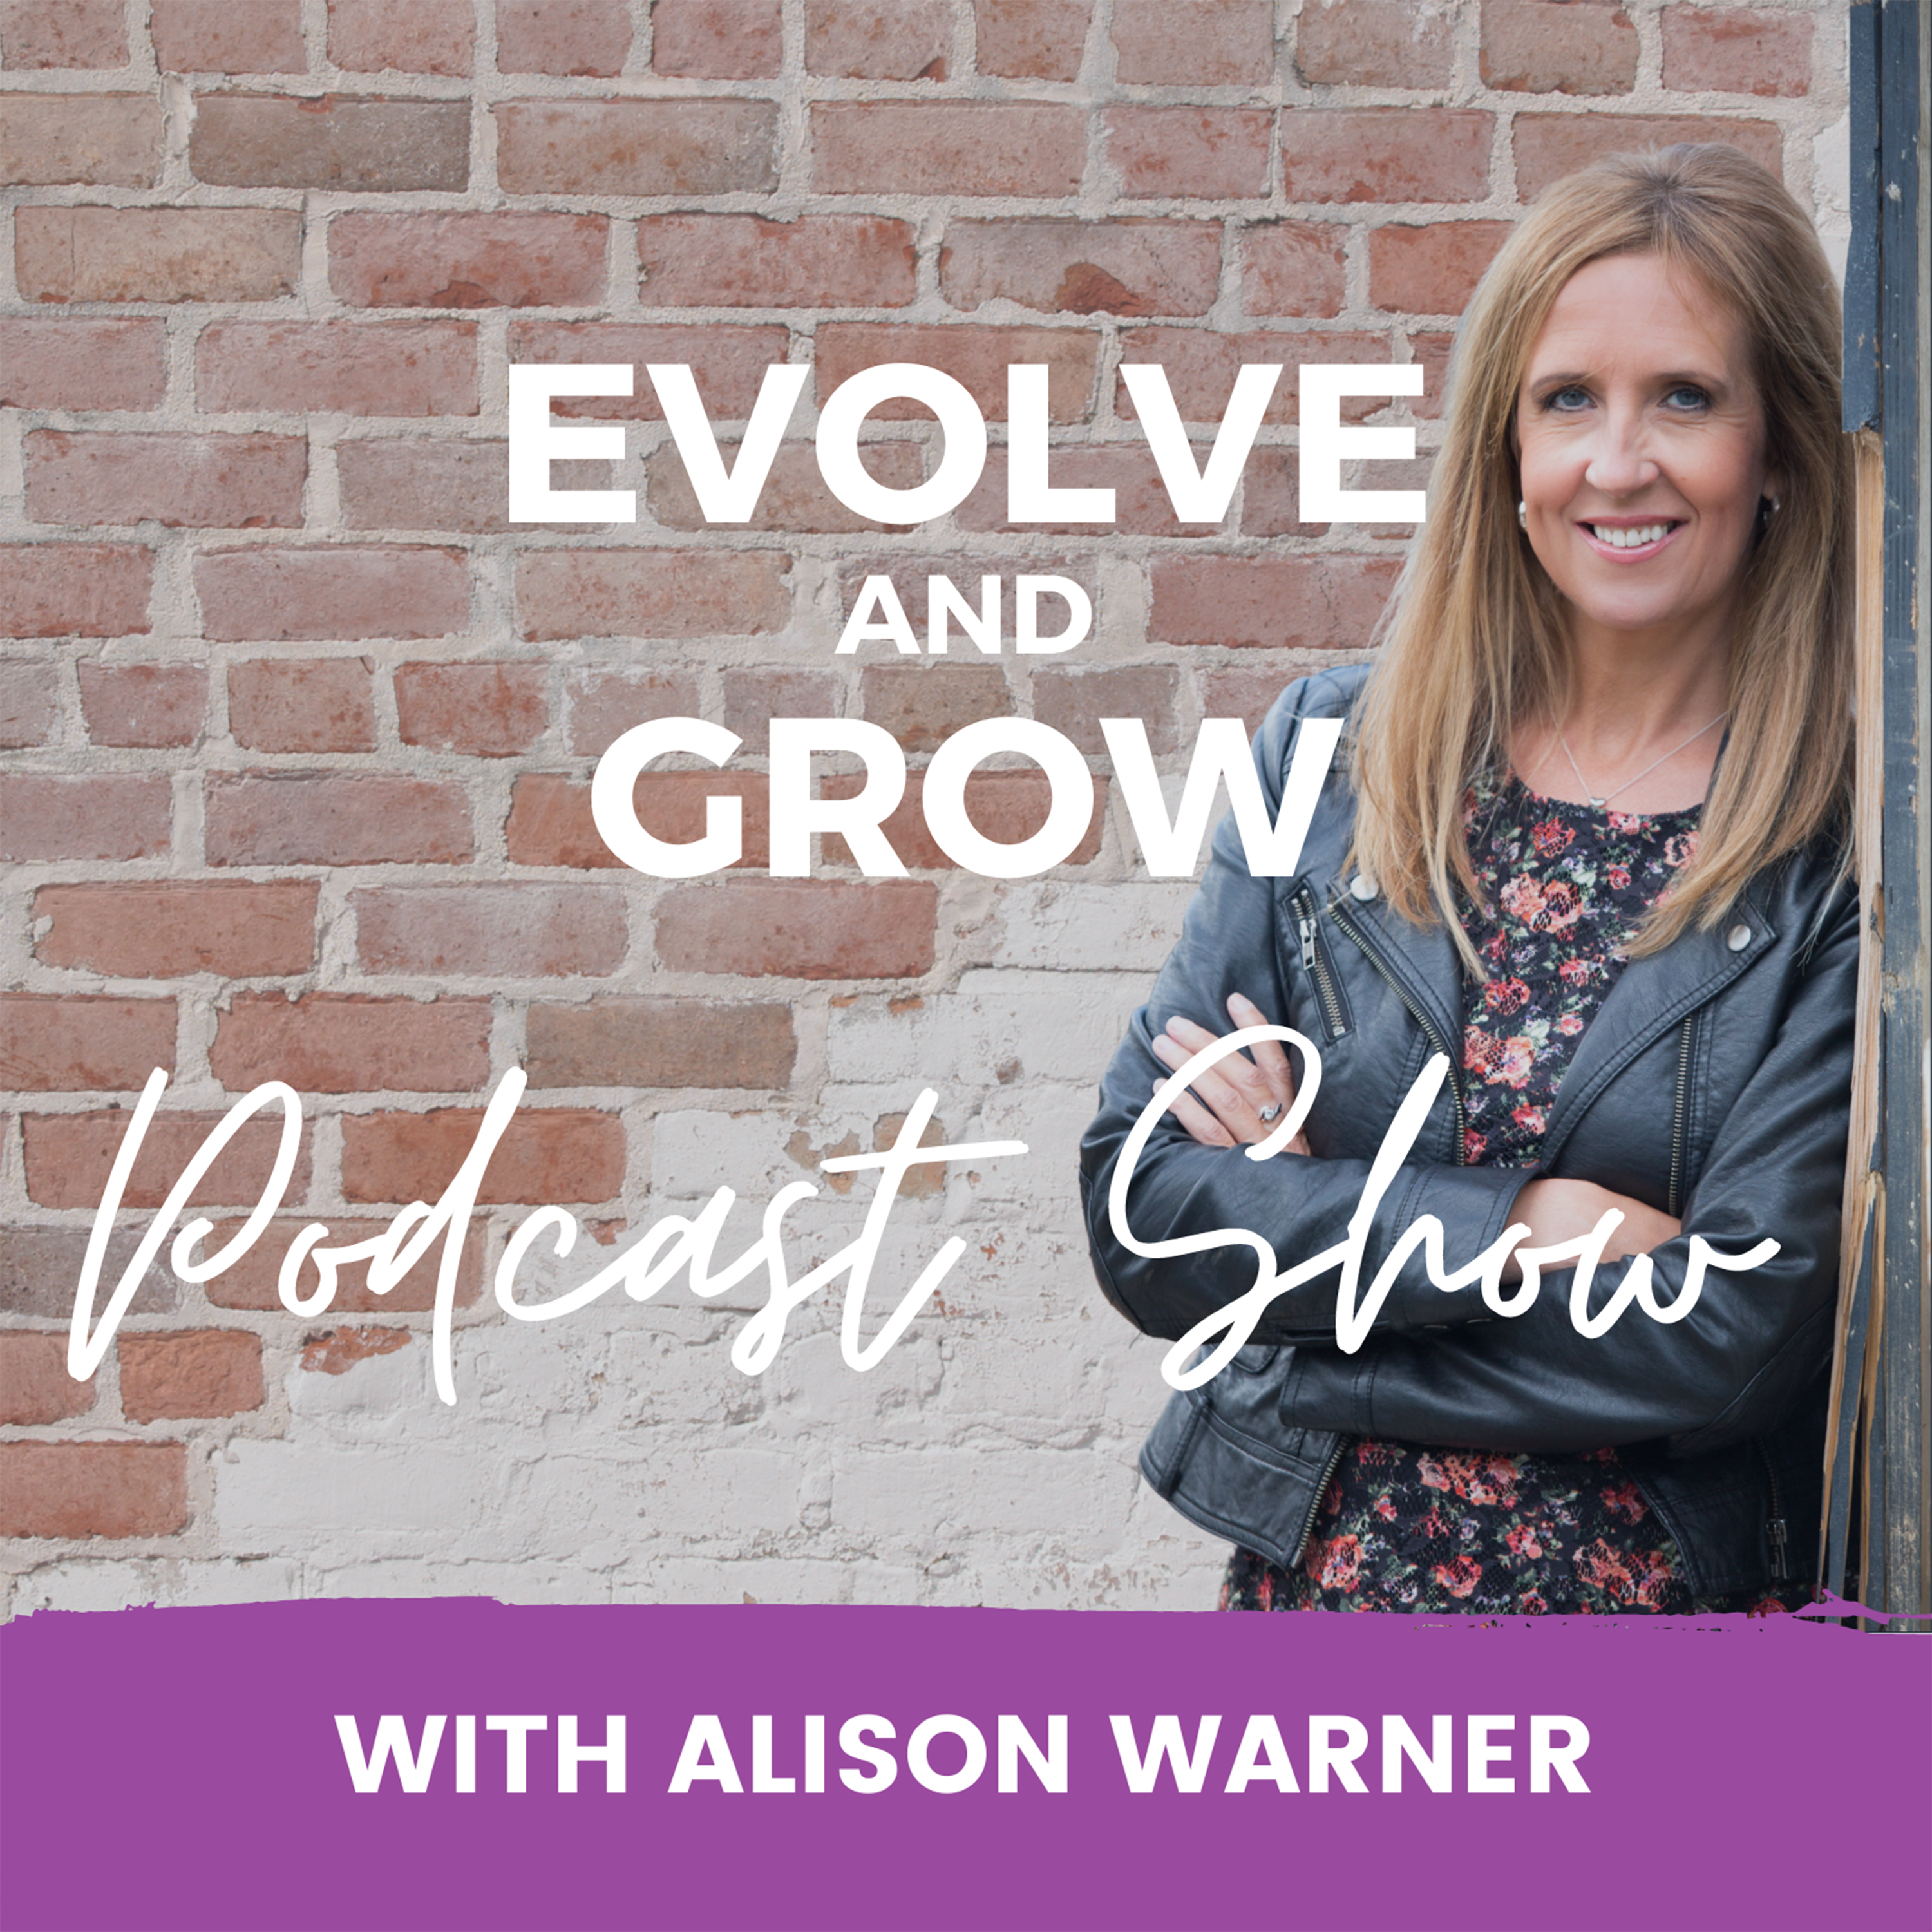 The Evolve and Grow Podcast Show